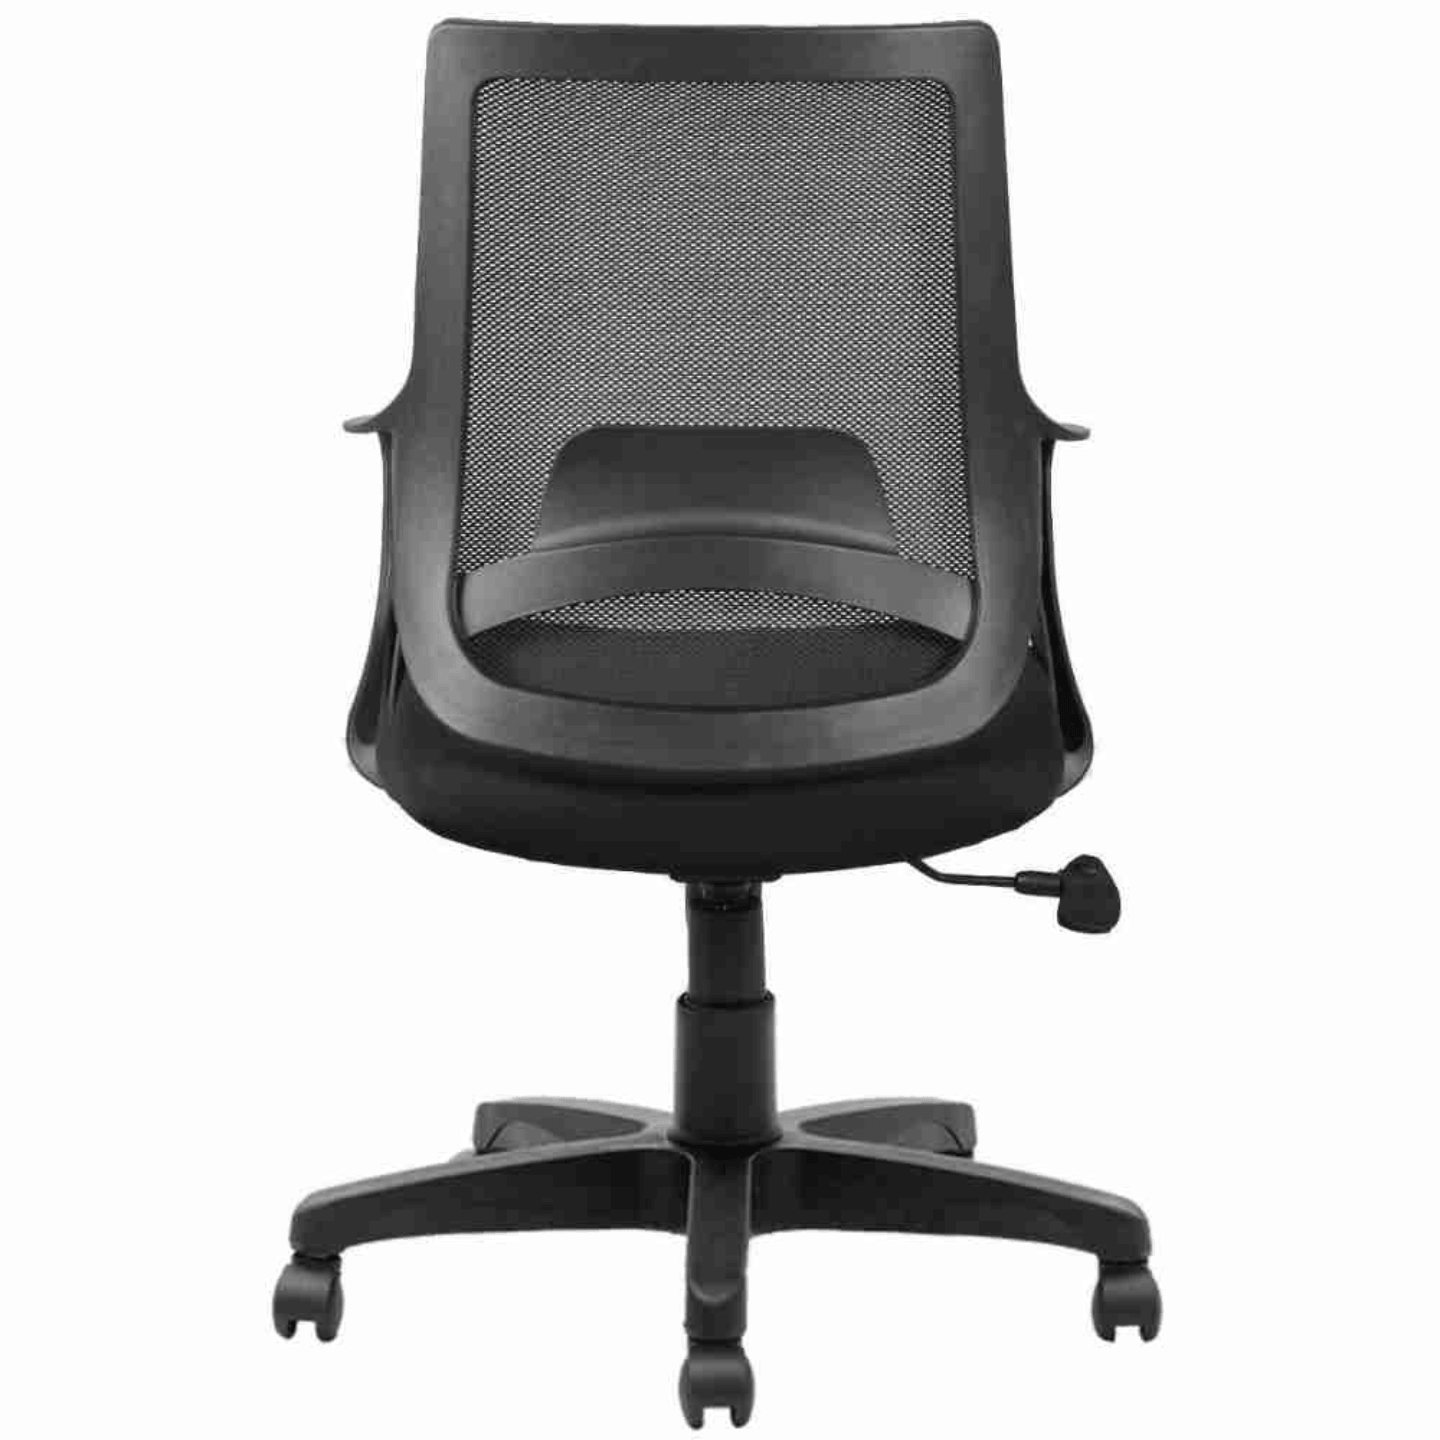 Home Office Study Chair Pear Low Back PEAR LB